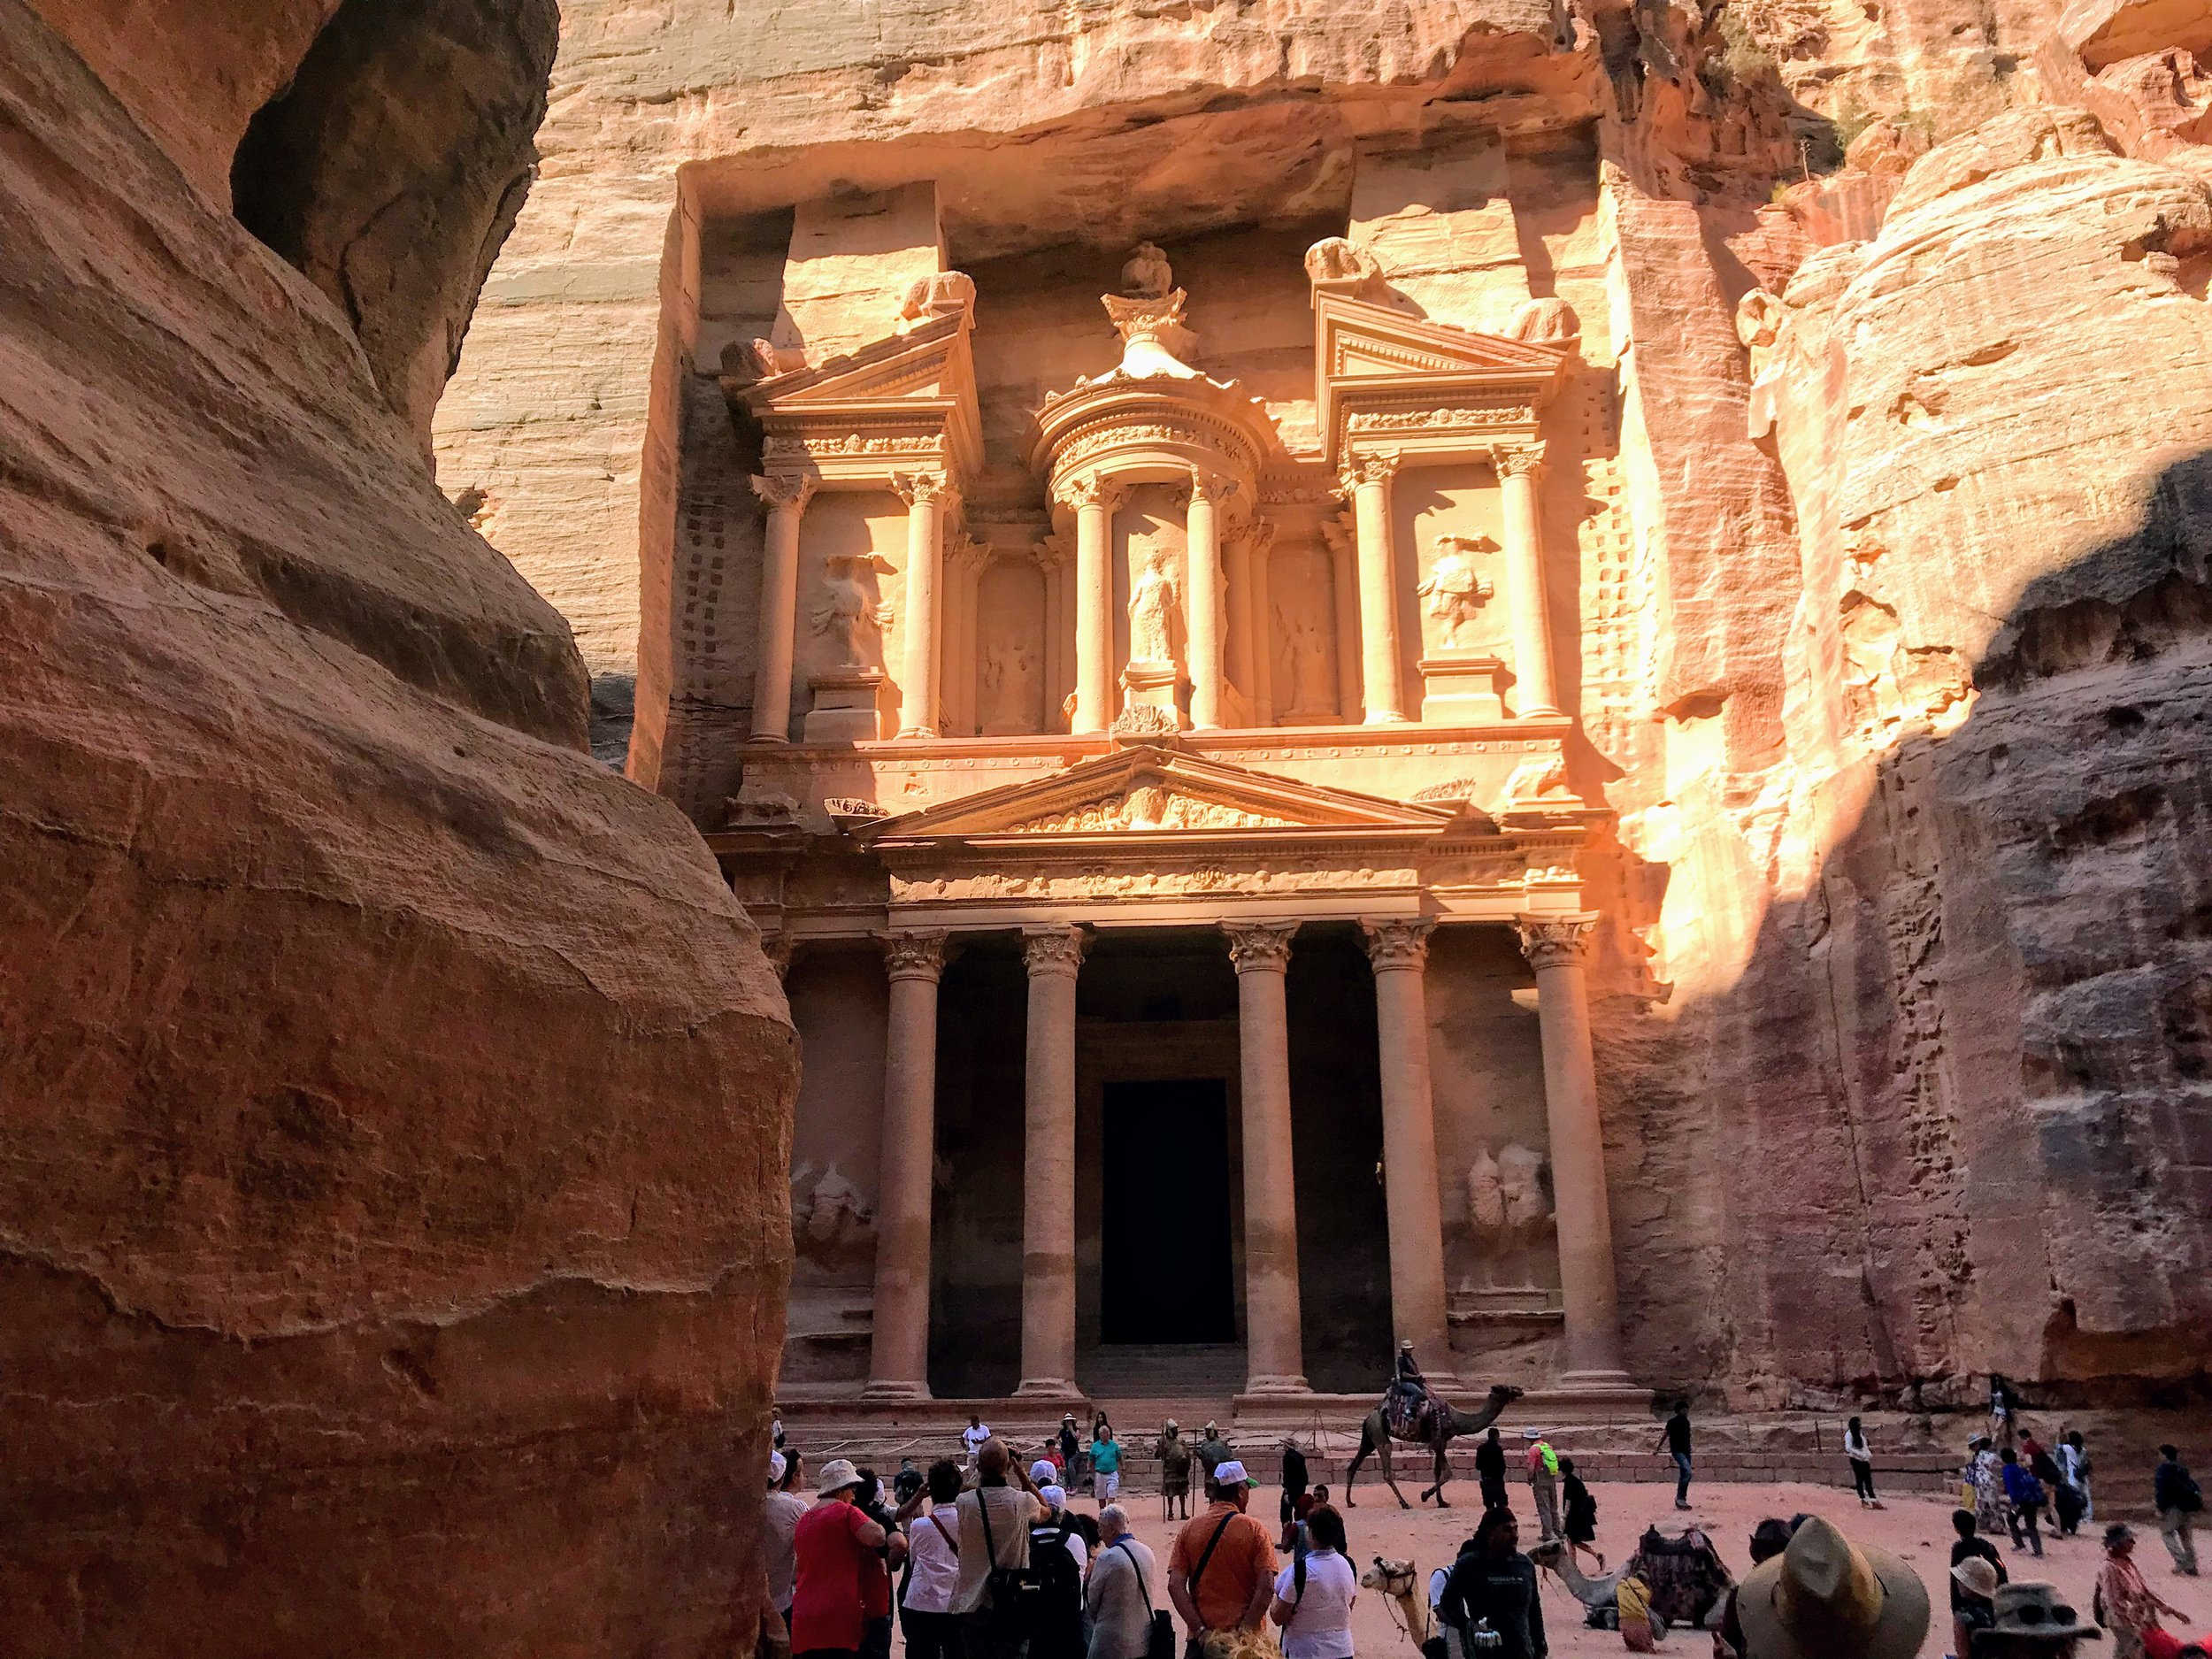 Israel & Jordan 2.0 - We offer this exciting alumni-only itinerary for participants who have previously traveled in Israel with Travel the Text. This itinerary includes almost entirely new sites in Israel, and three days in Jordan. Our next